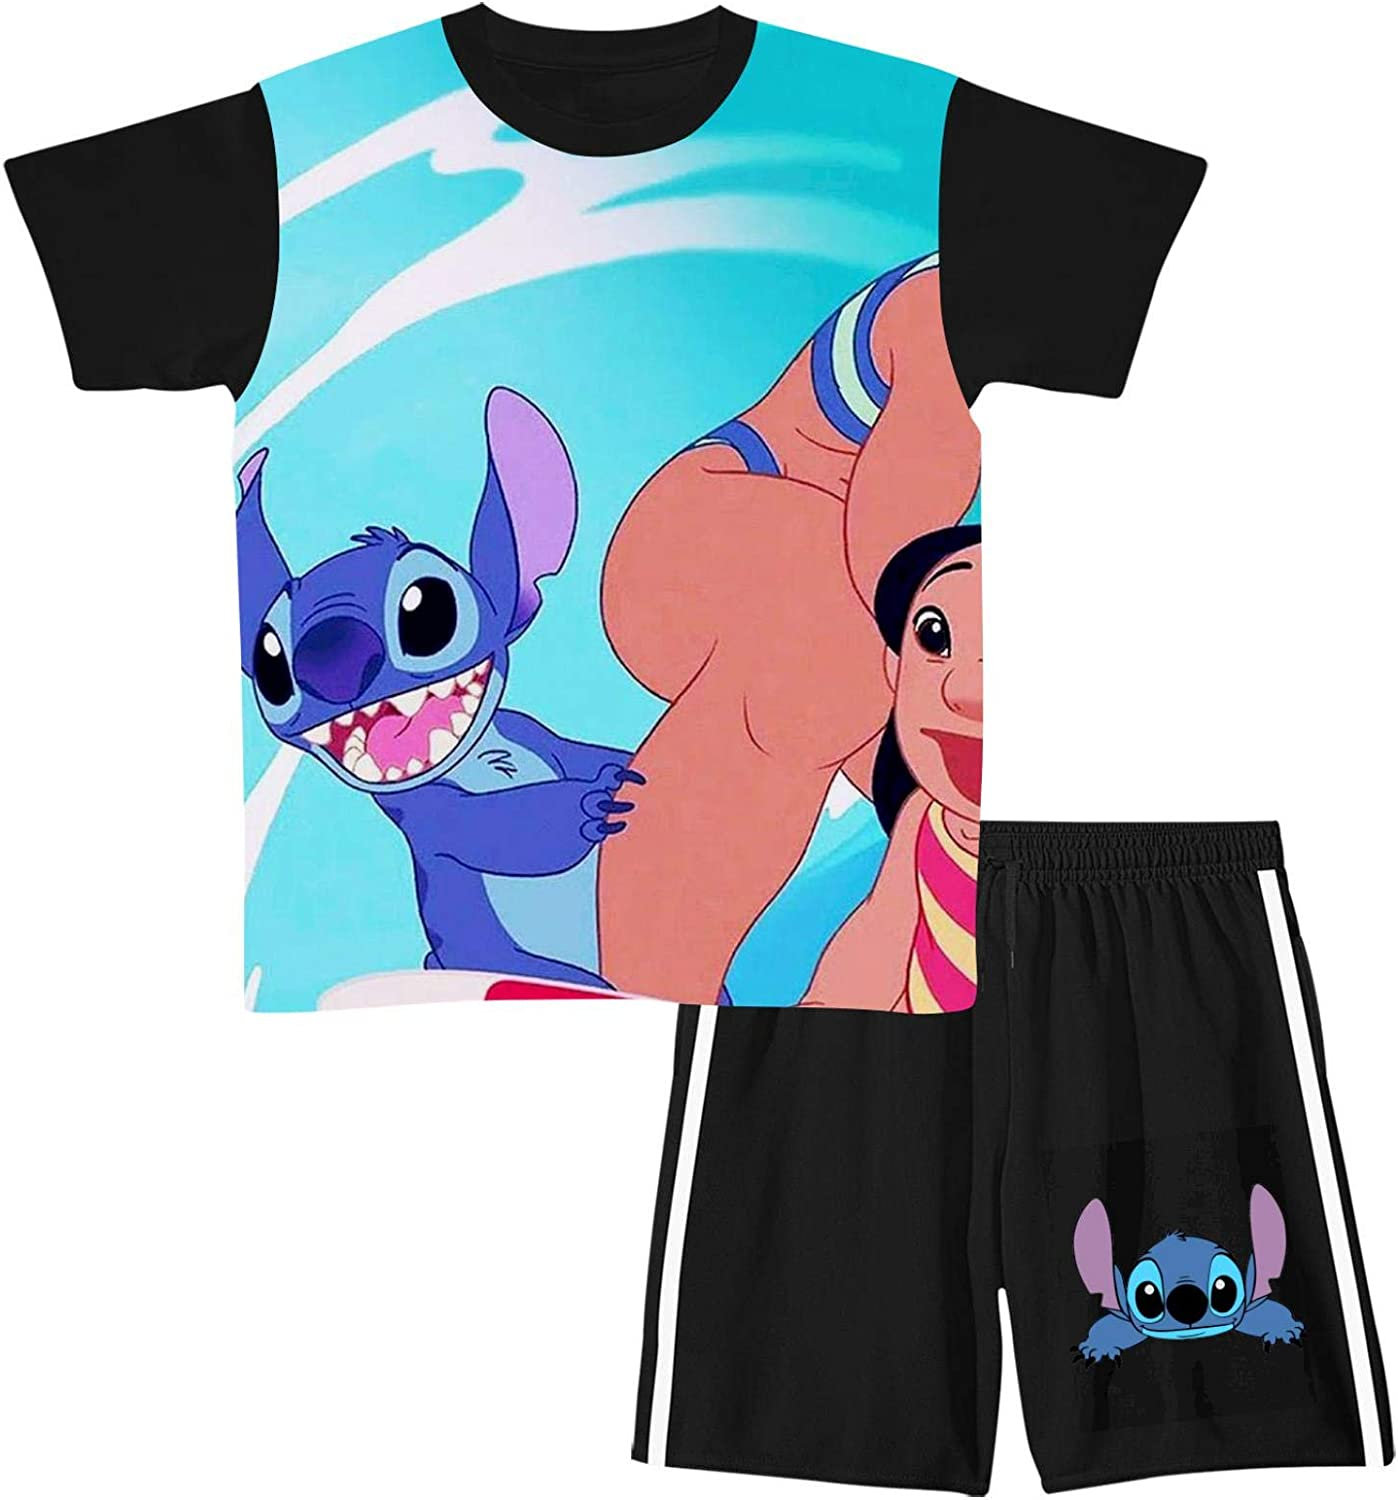 Youth Unisex Lilo & Sti_tch Short Sleeve Crew Neck T-Shirt Top Clothes and Shorts Outfits Set 2 Piece Suit